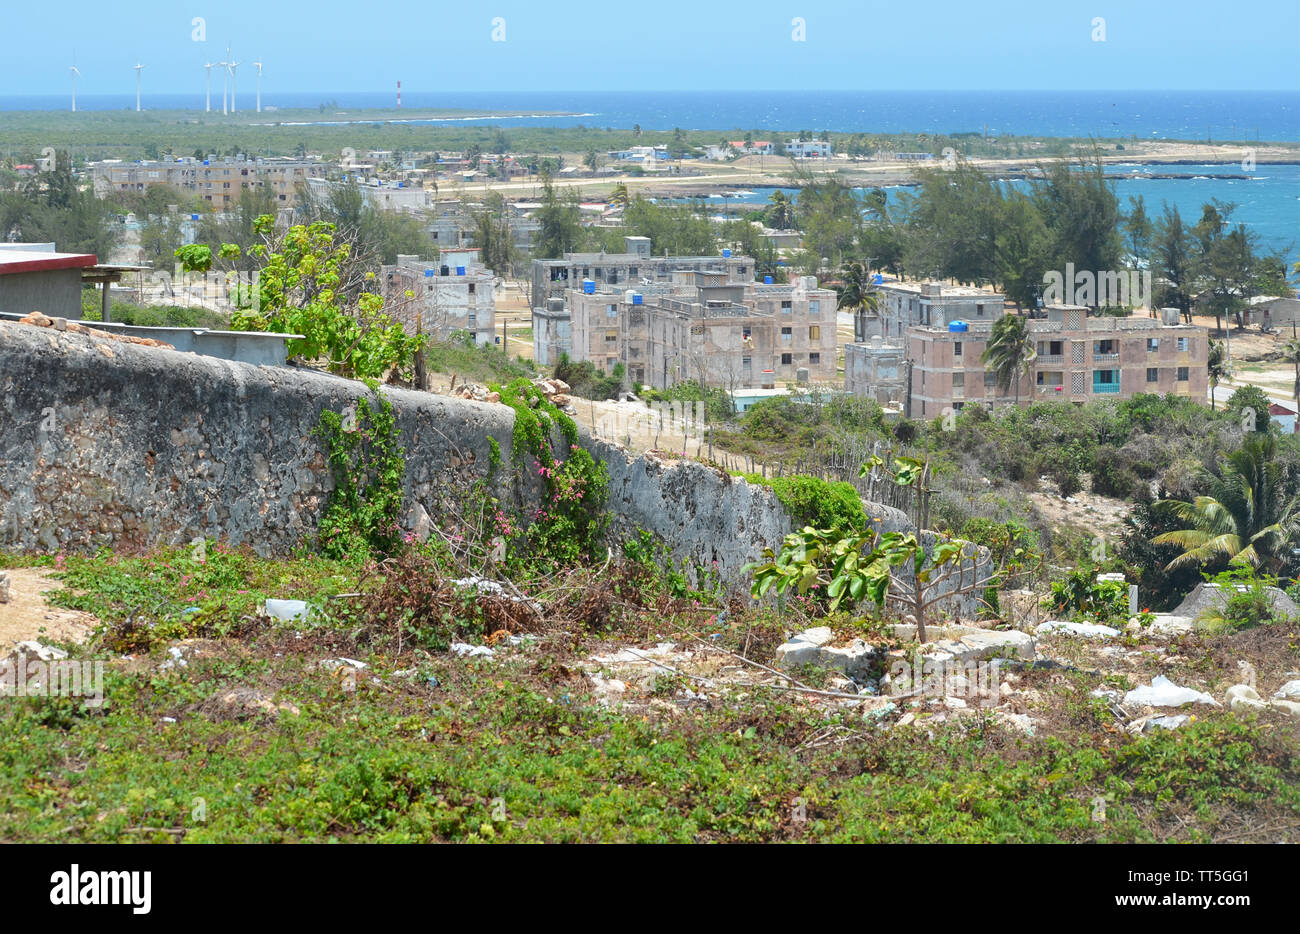 Derelict buildings and concrete apartment blocks in Gibara, Southern Cuba - Stock Image